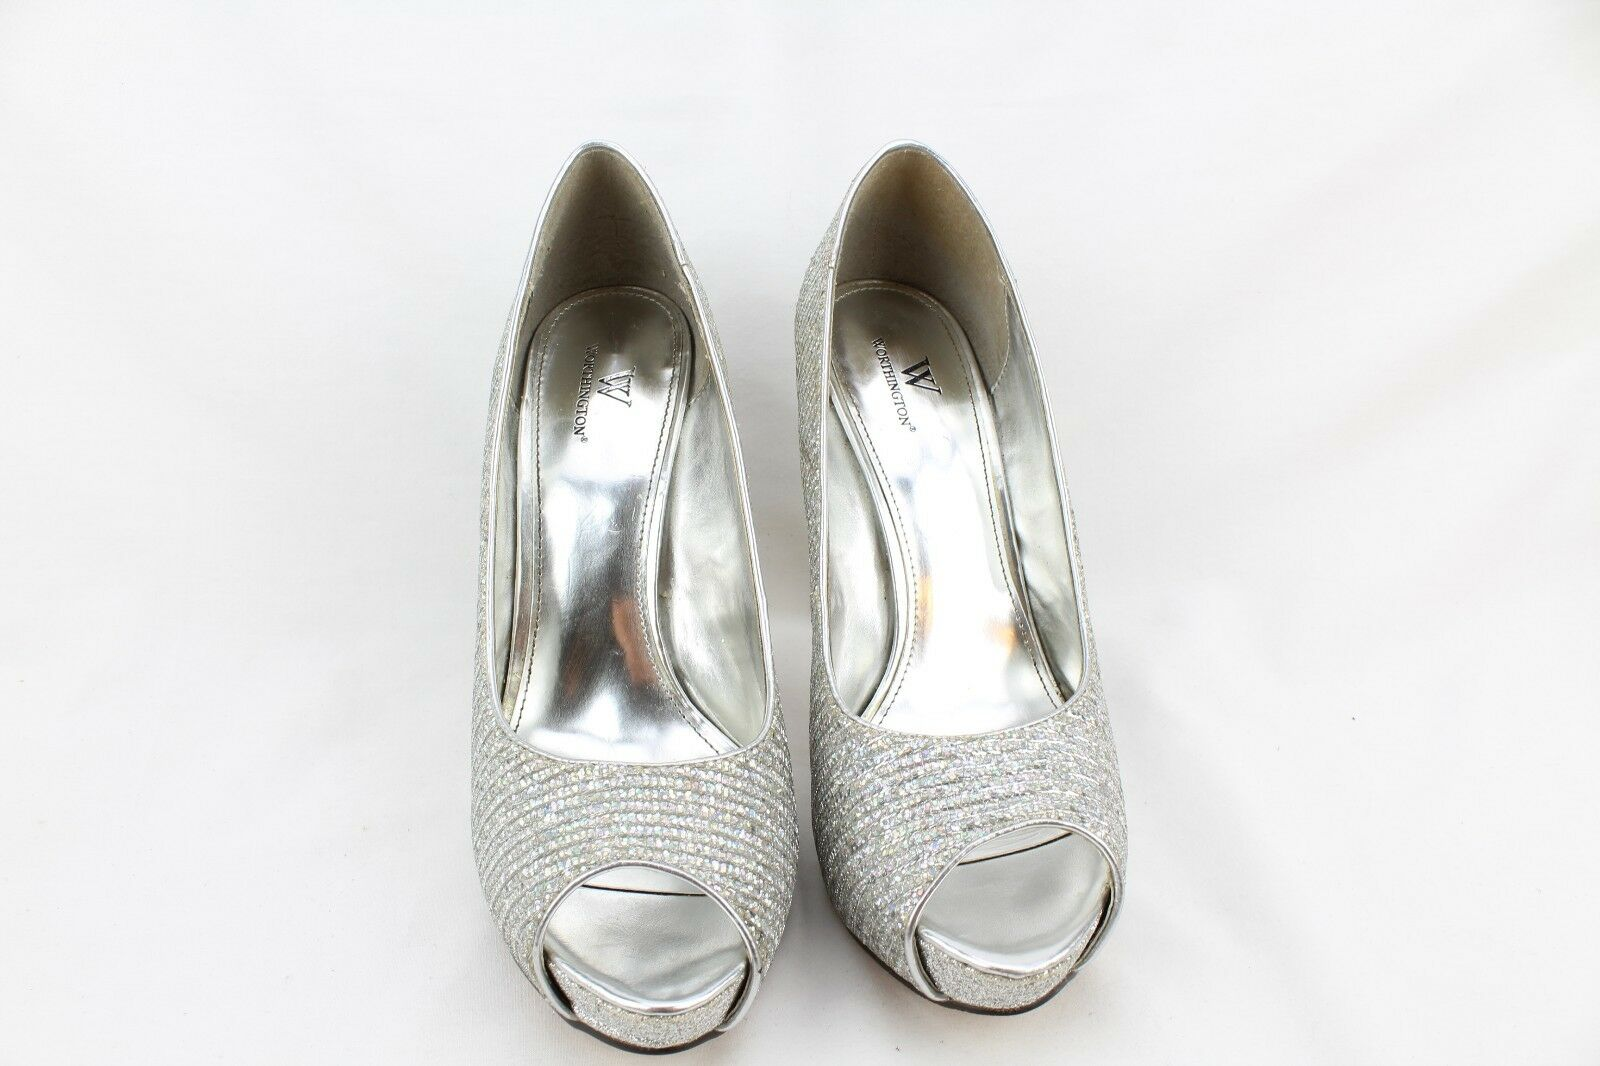 WORTHINGTON Womens Silver Shiny Sparkle Stilleto High Heels Open Toes Size 9.5 M